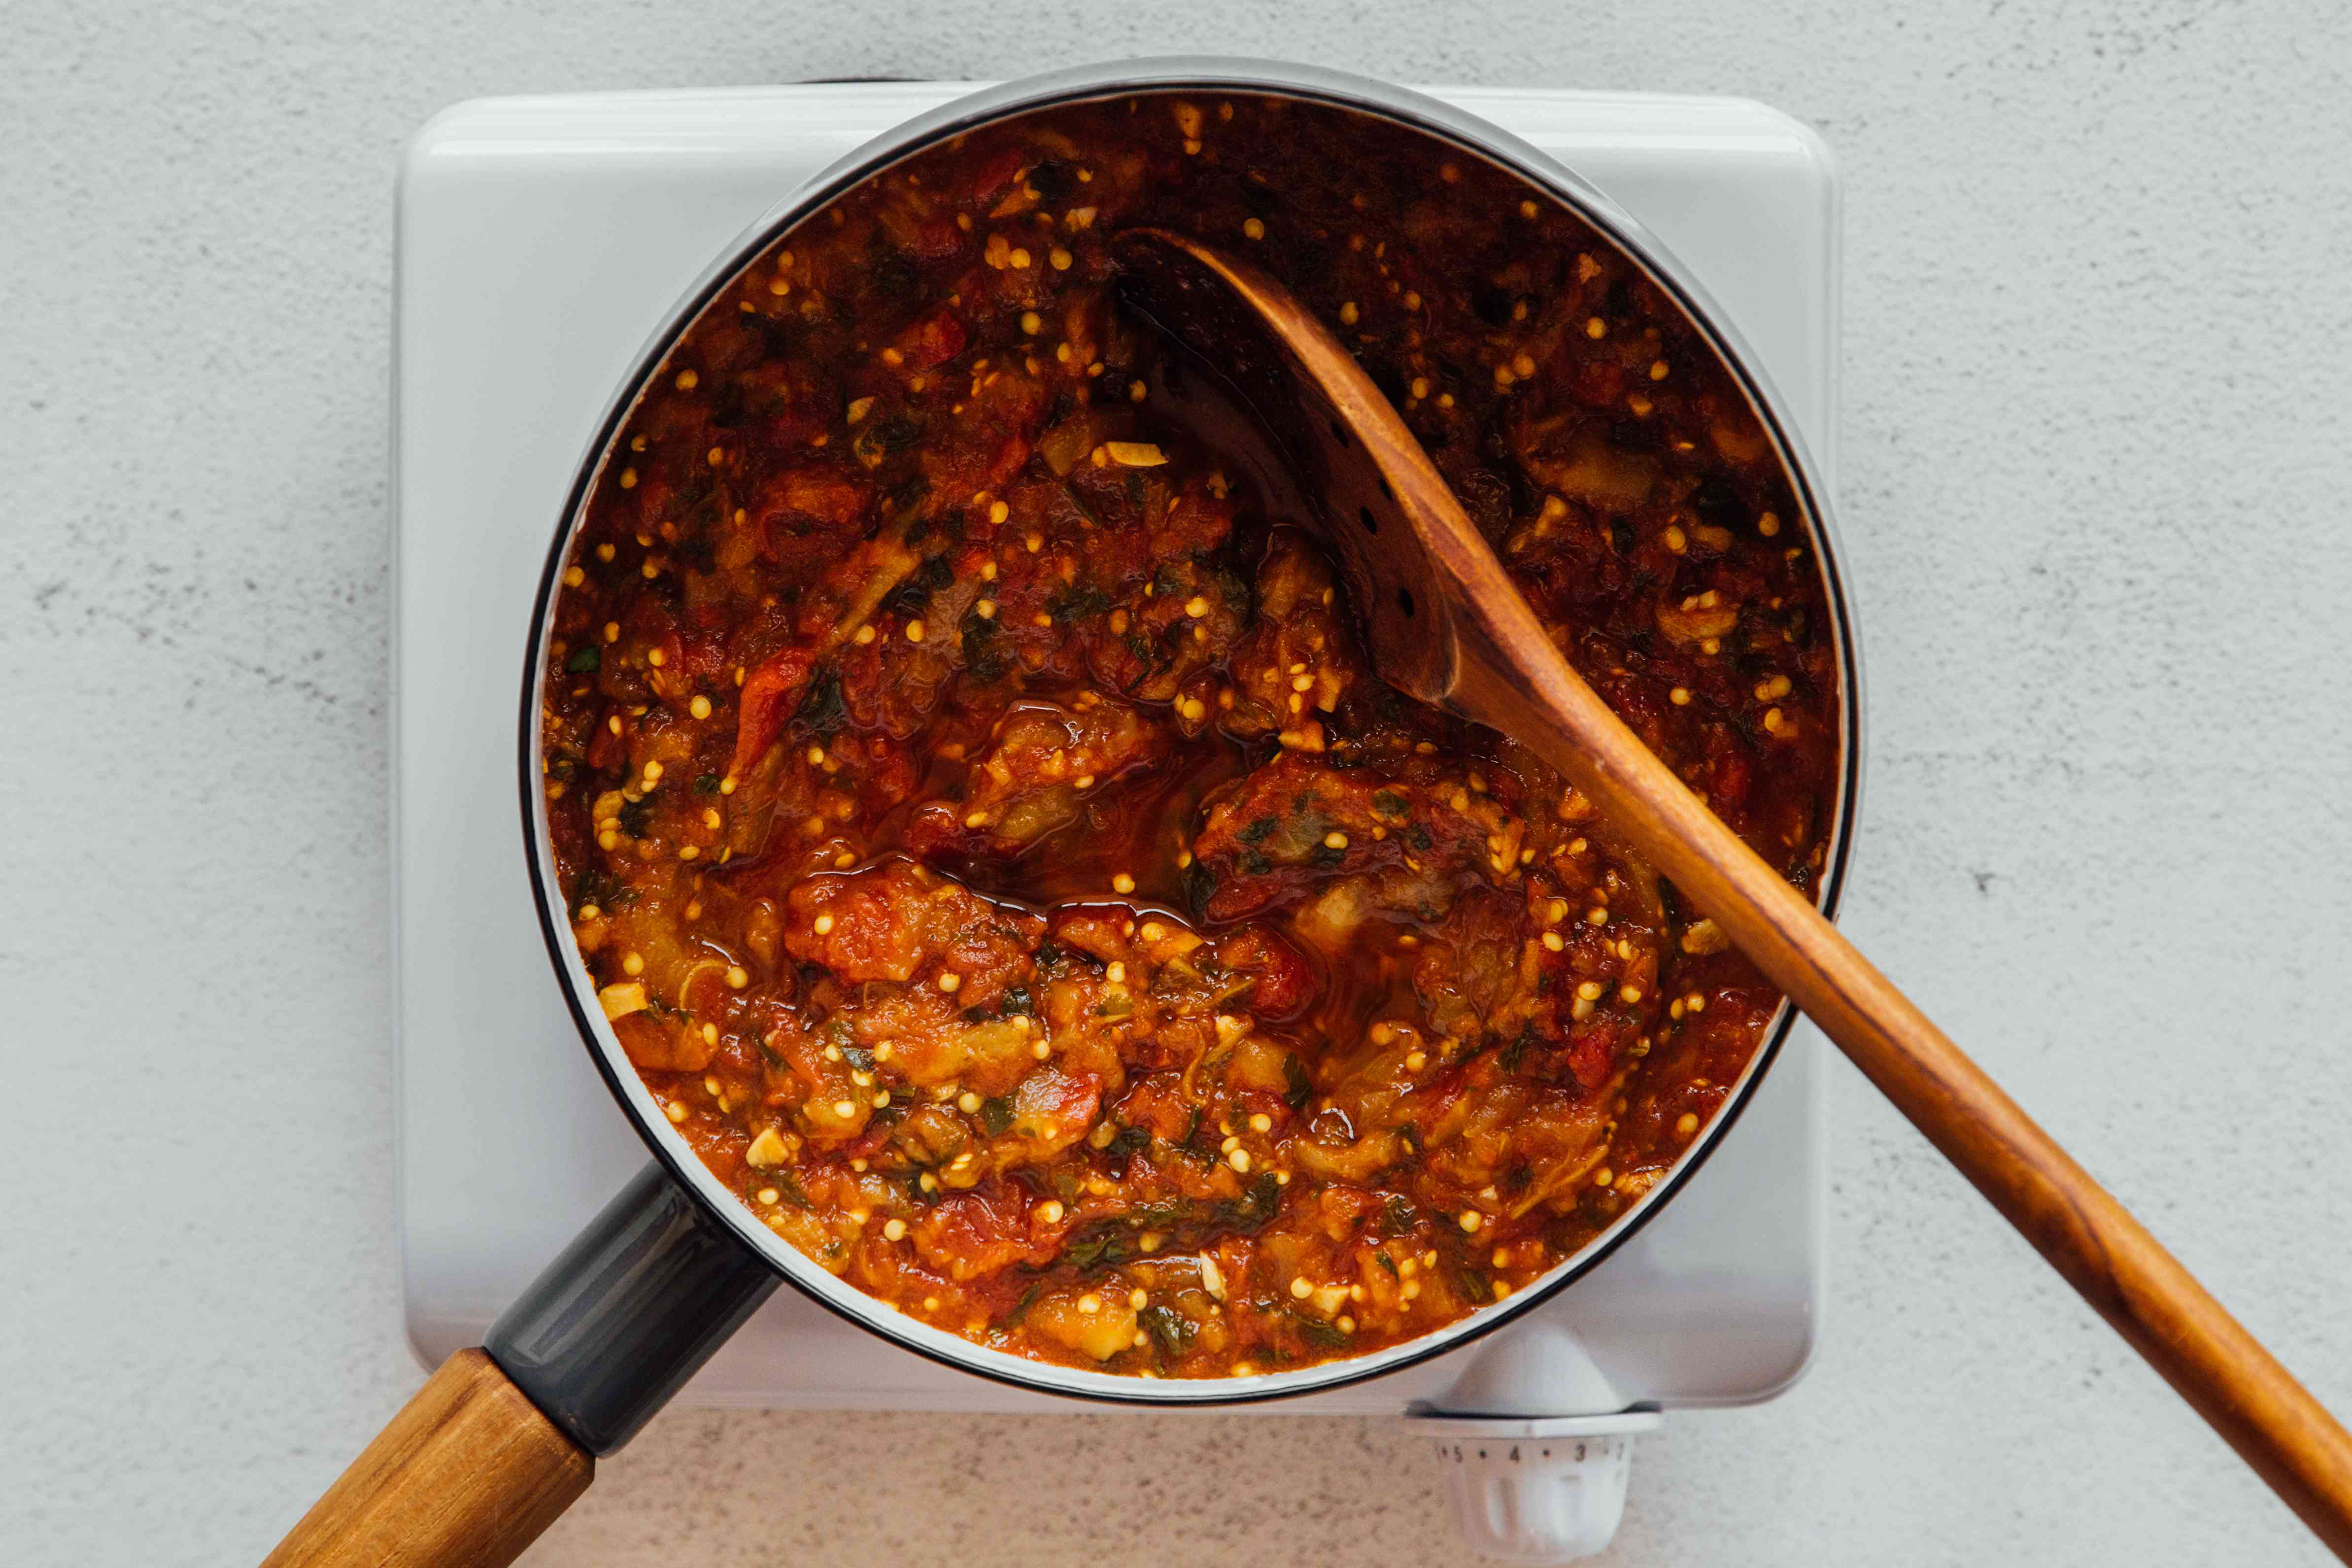 Tomato and eggplant mixture cooking in a pan